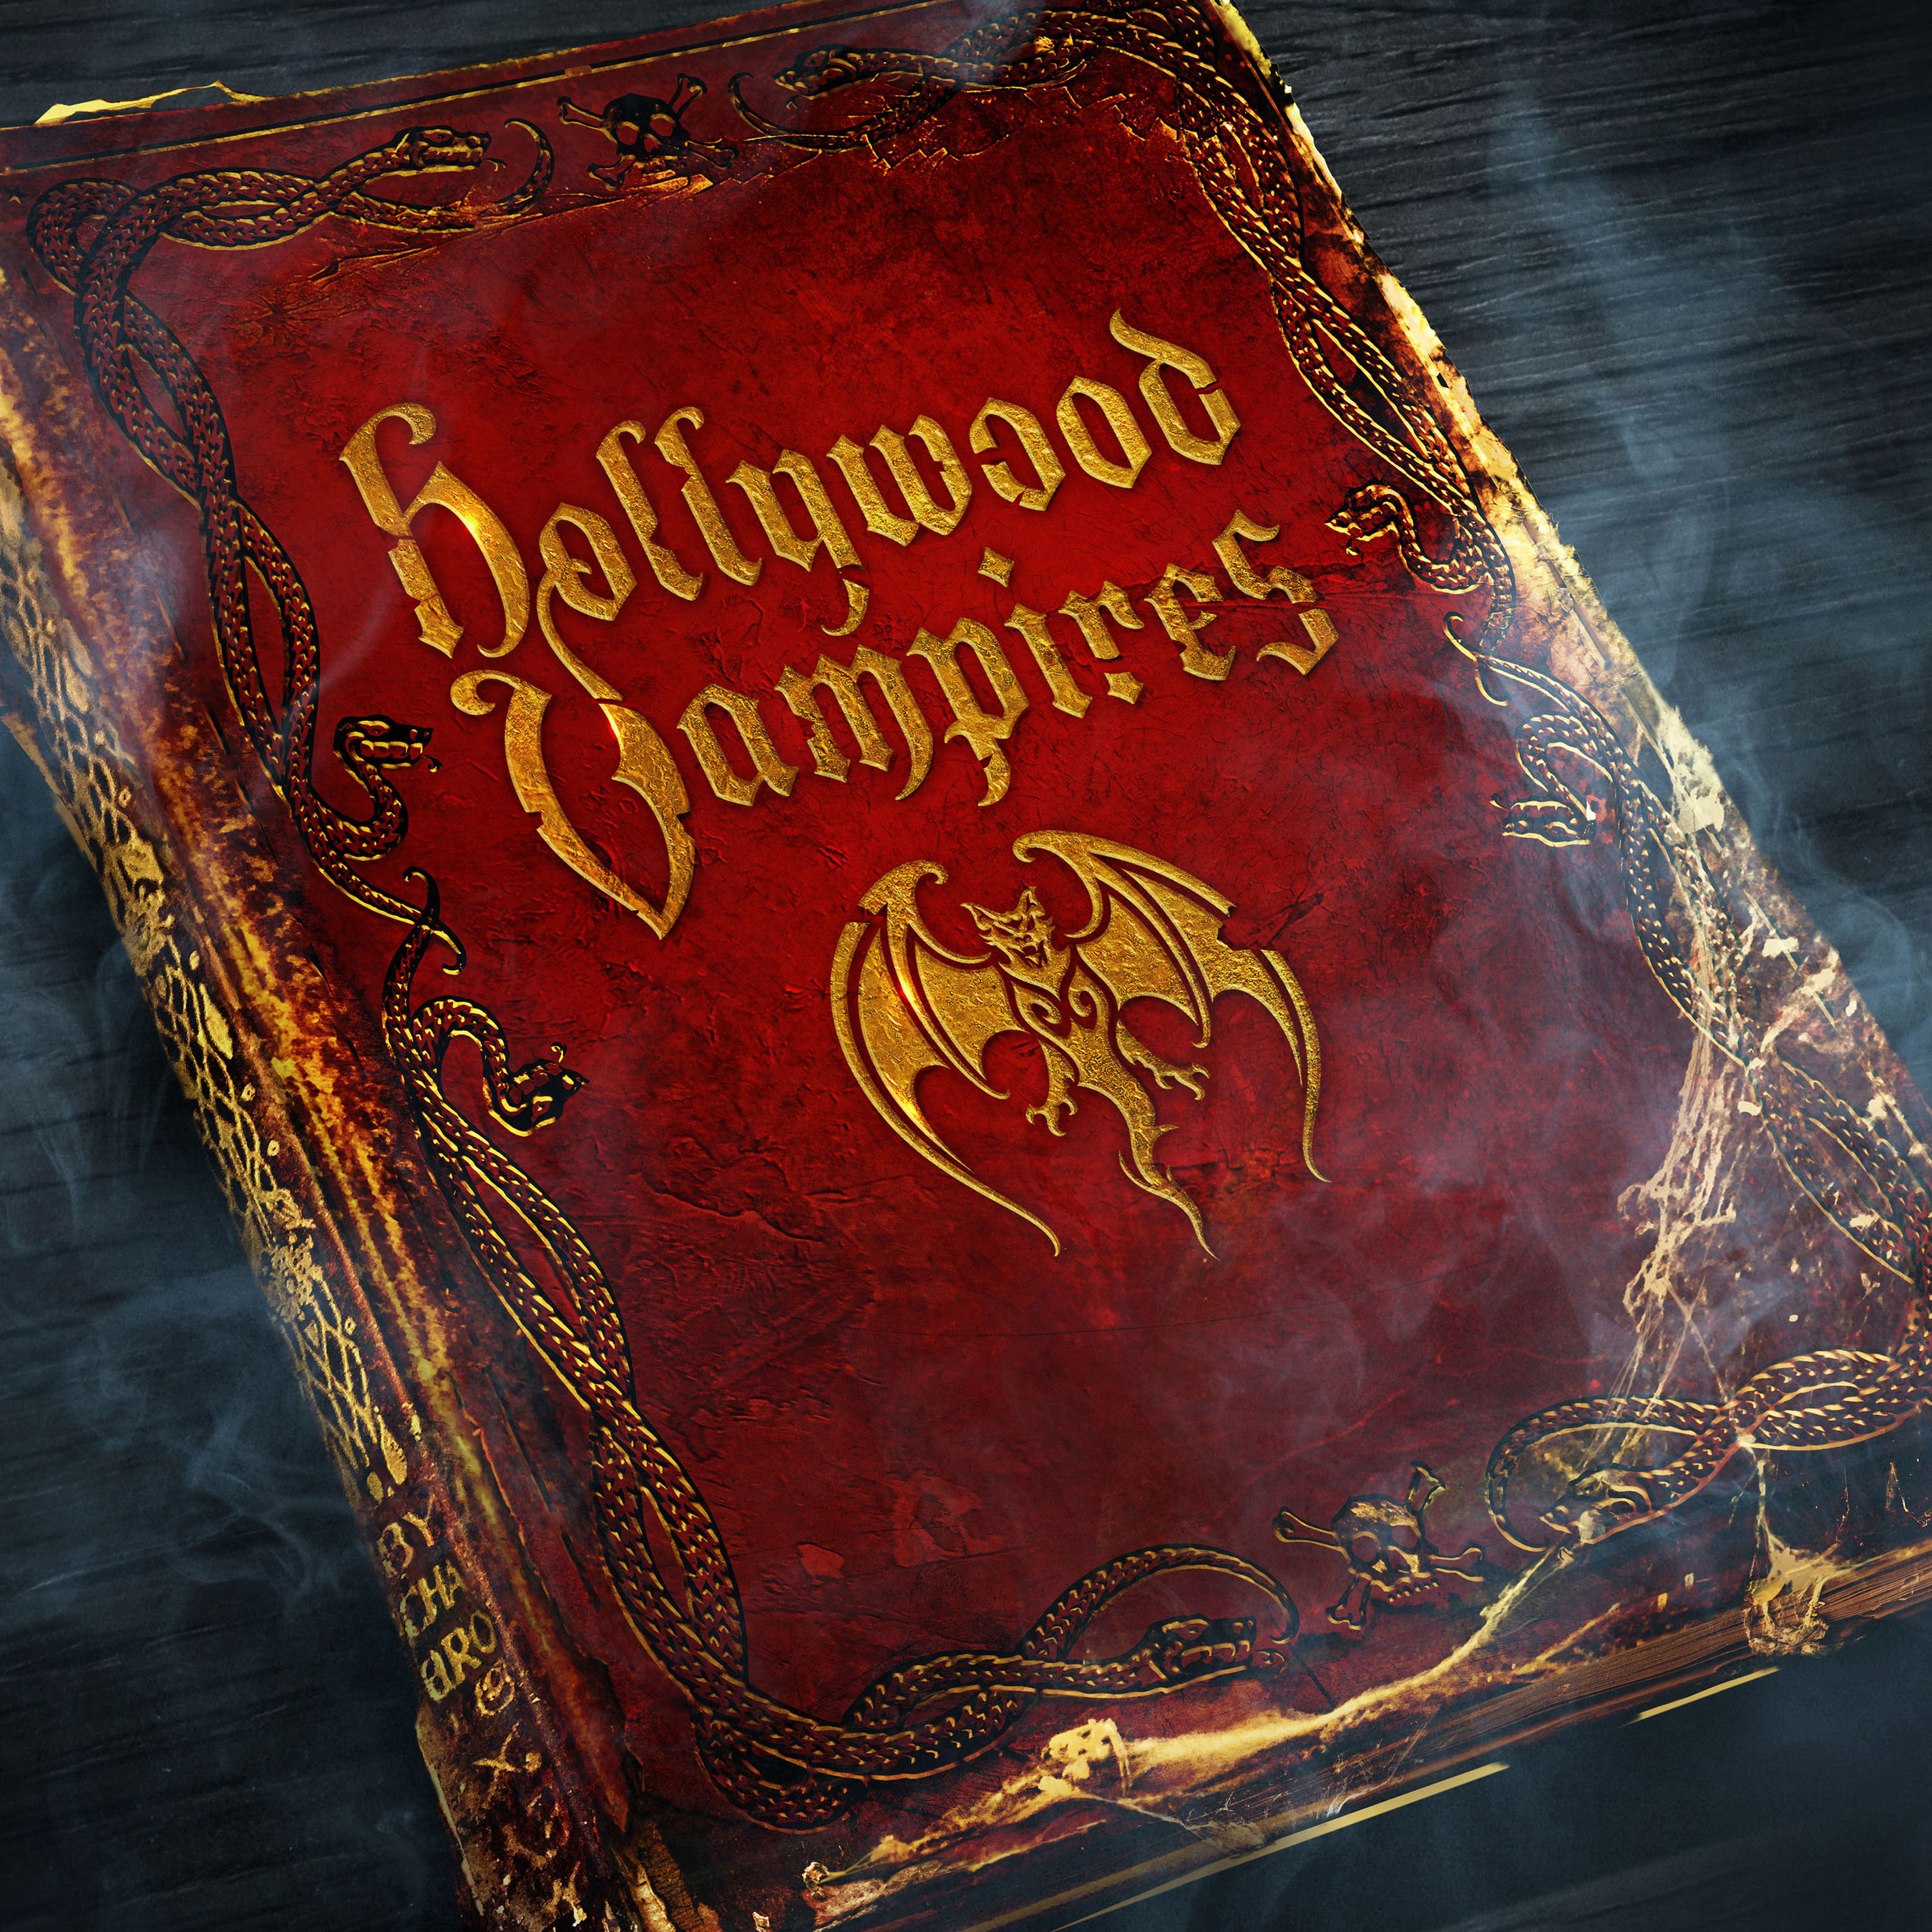 Hollywood Vampires Announce Rare Performances